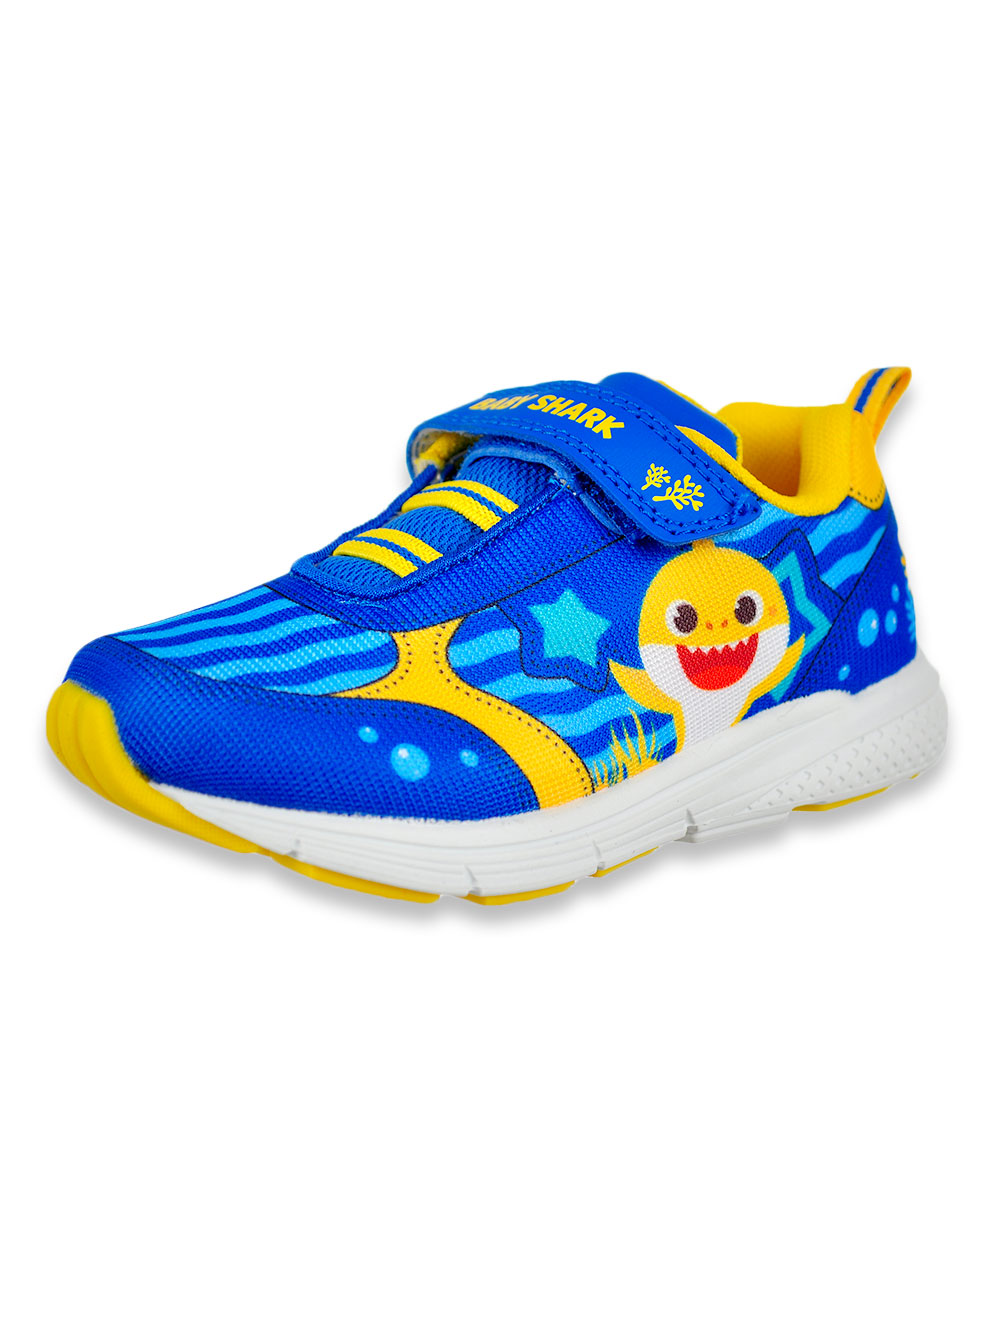 Pinkfong Baby Shark Sneakers